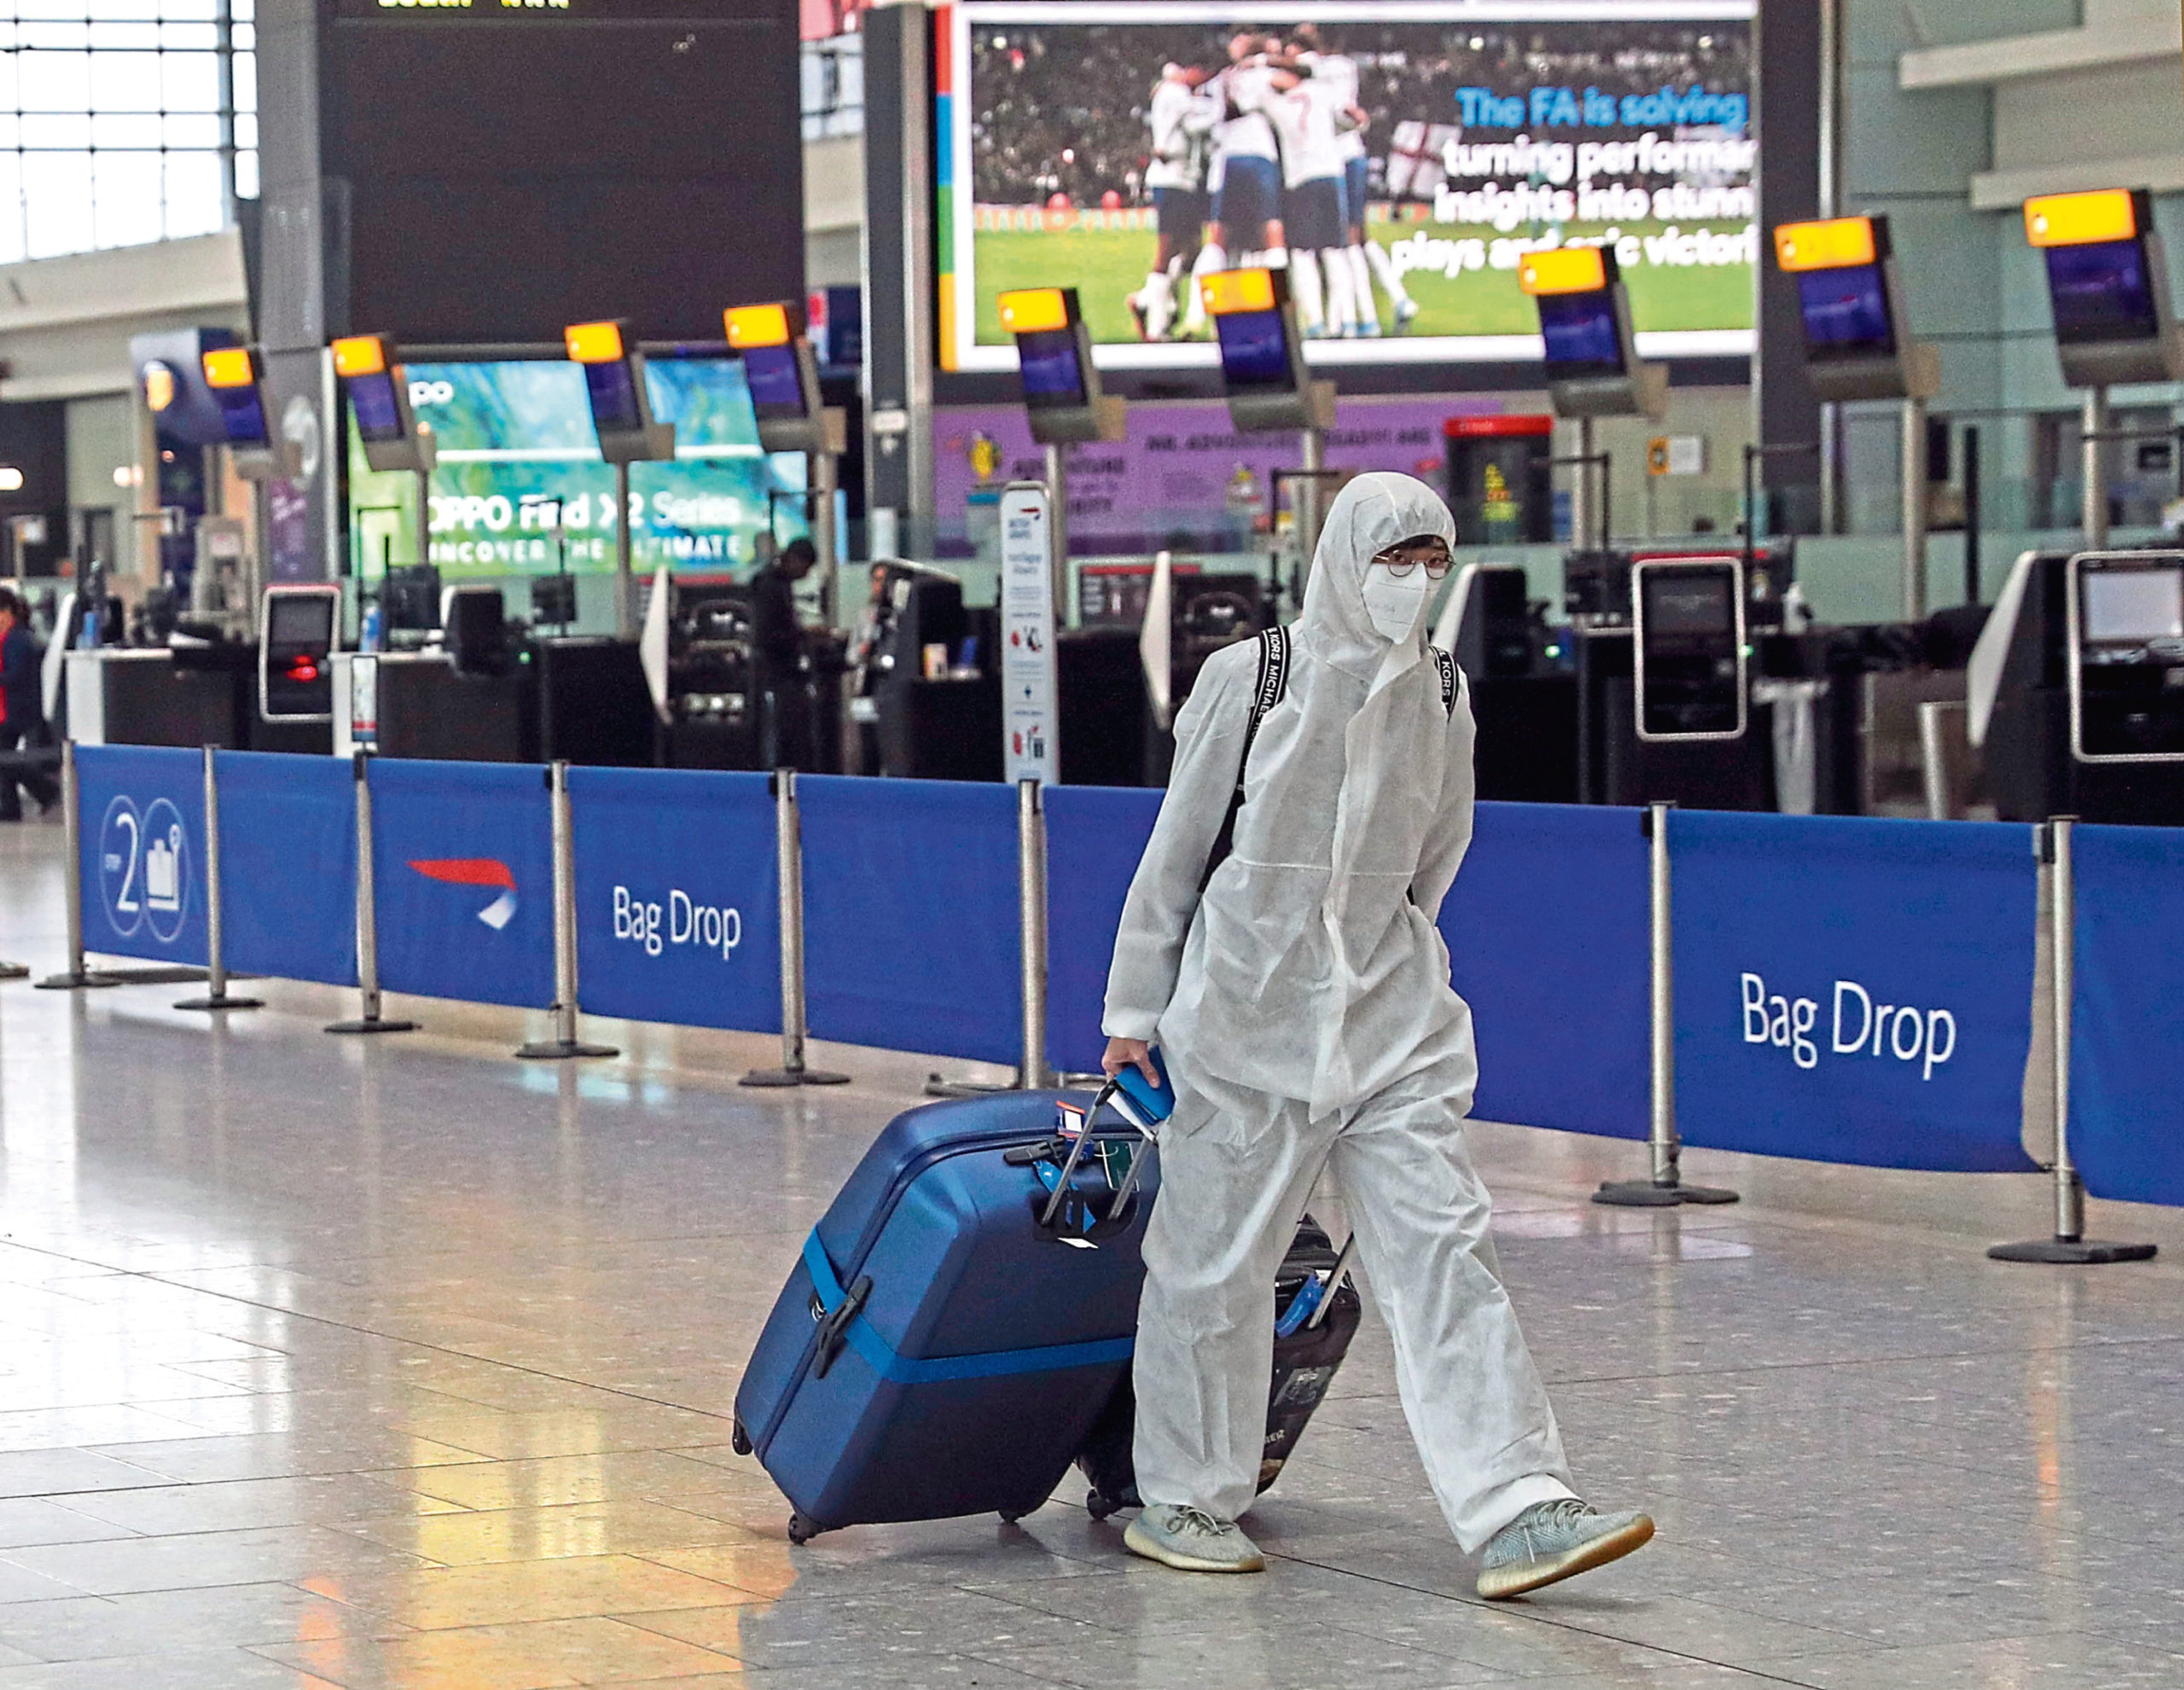 A passenger wearing protective clothing checks in for a flight from Heathrow Airport's Terminal 5 in London. PA Photo. Picture date: Thursday March 19, 2020. See PA story HEALTH Coronavirus. Photo credit should read: Steve Parsons/PA Wire